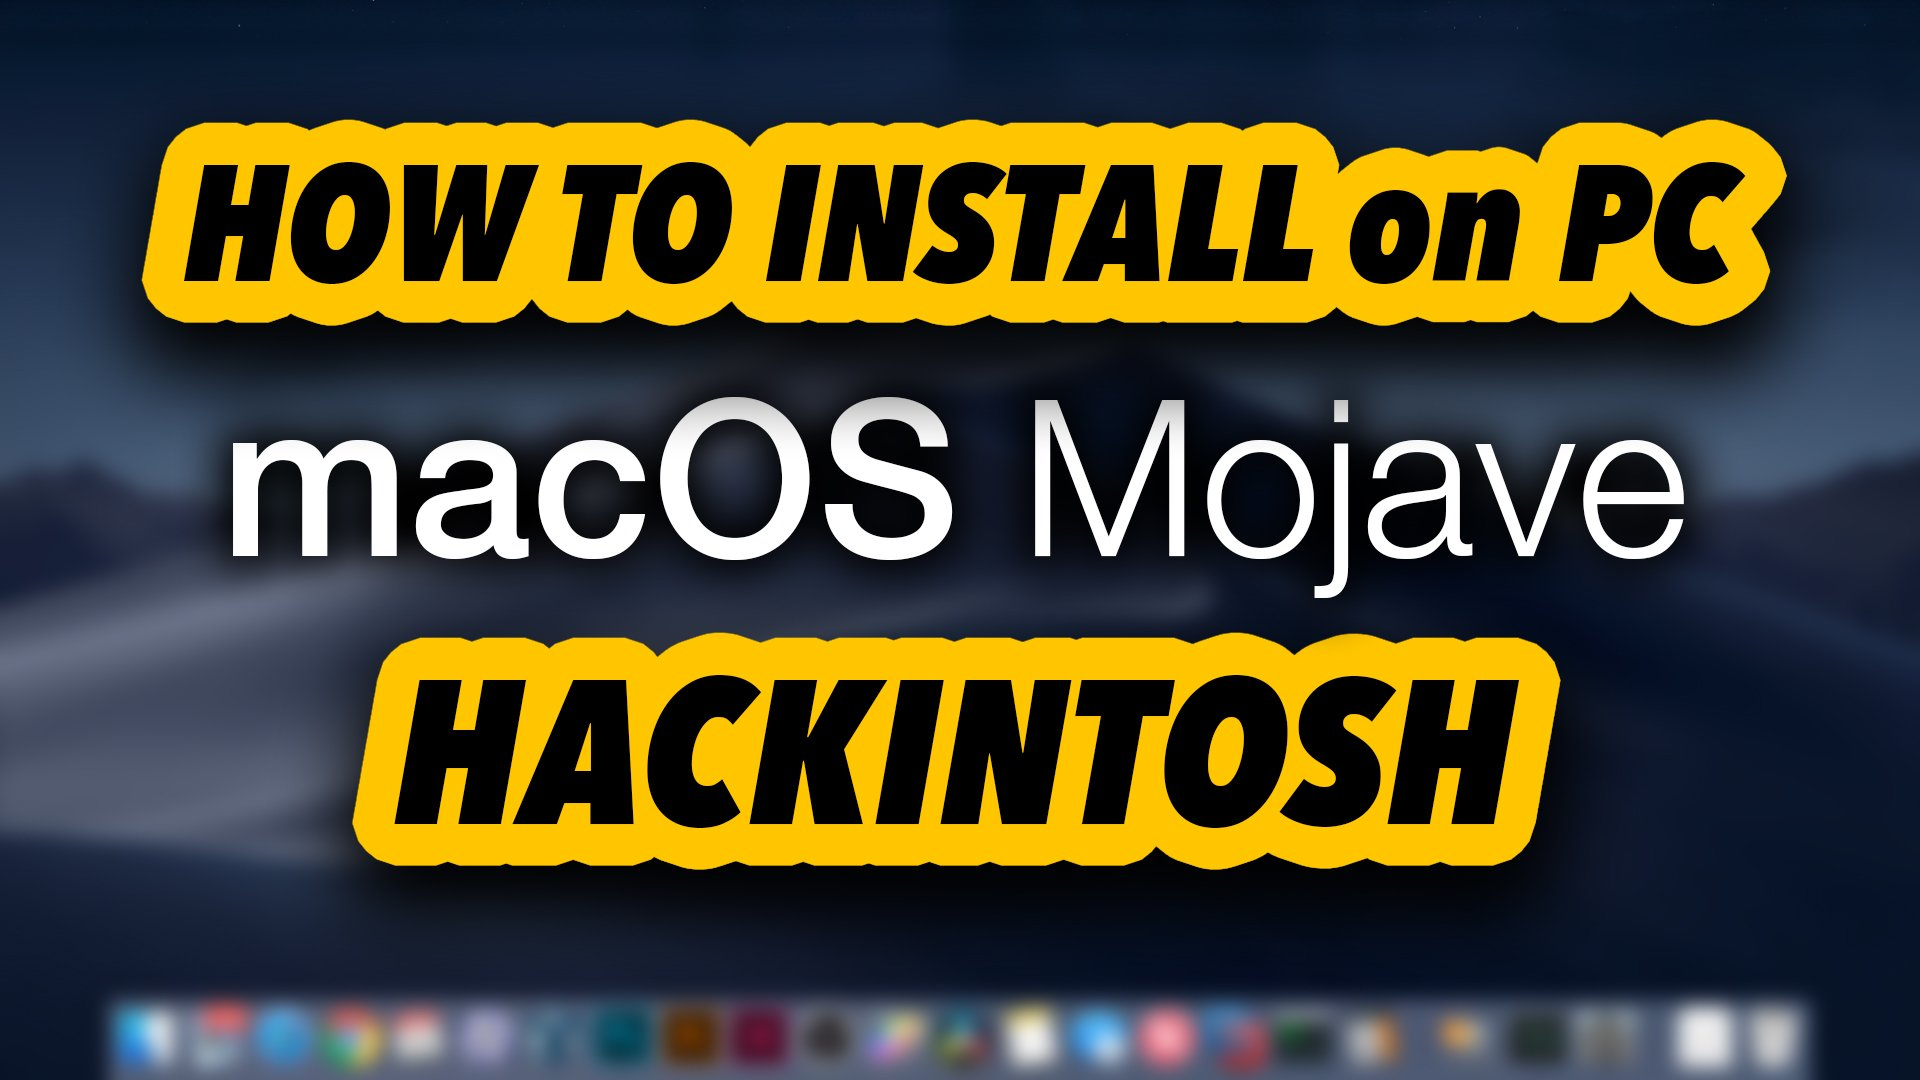 How to Install macOS Mojave on PC from Windows - MORGONAUT